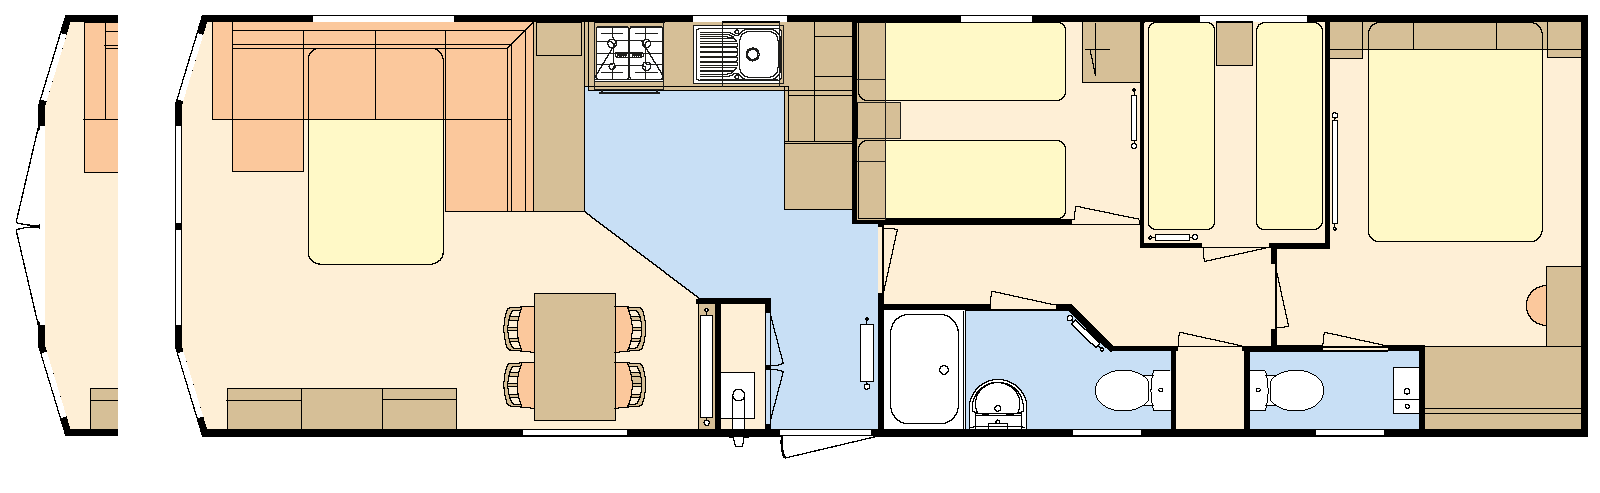 40 × 12 – 3 bedroom/8 berth